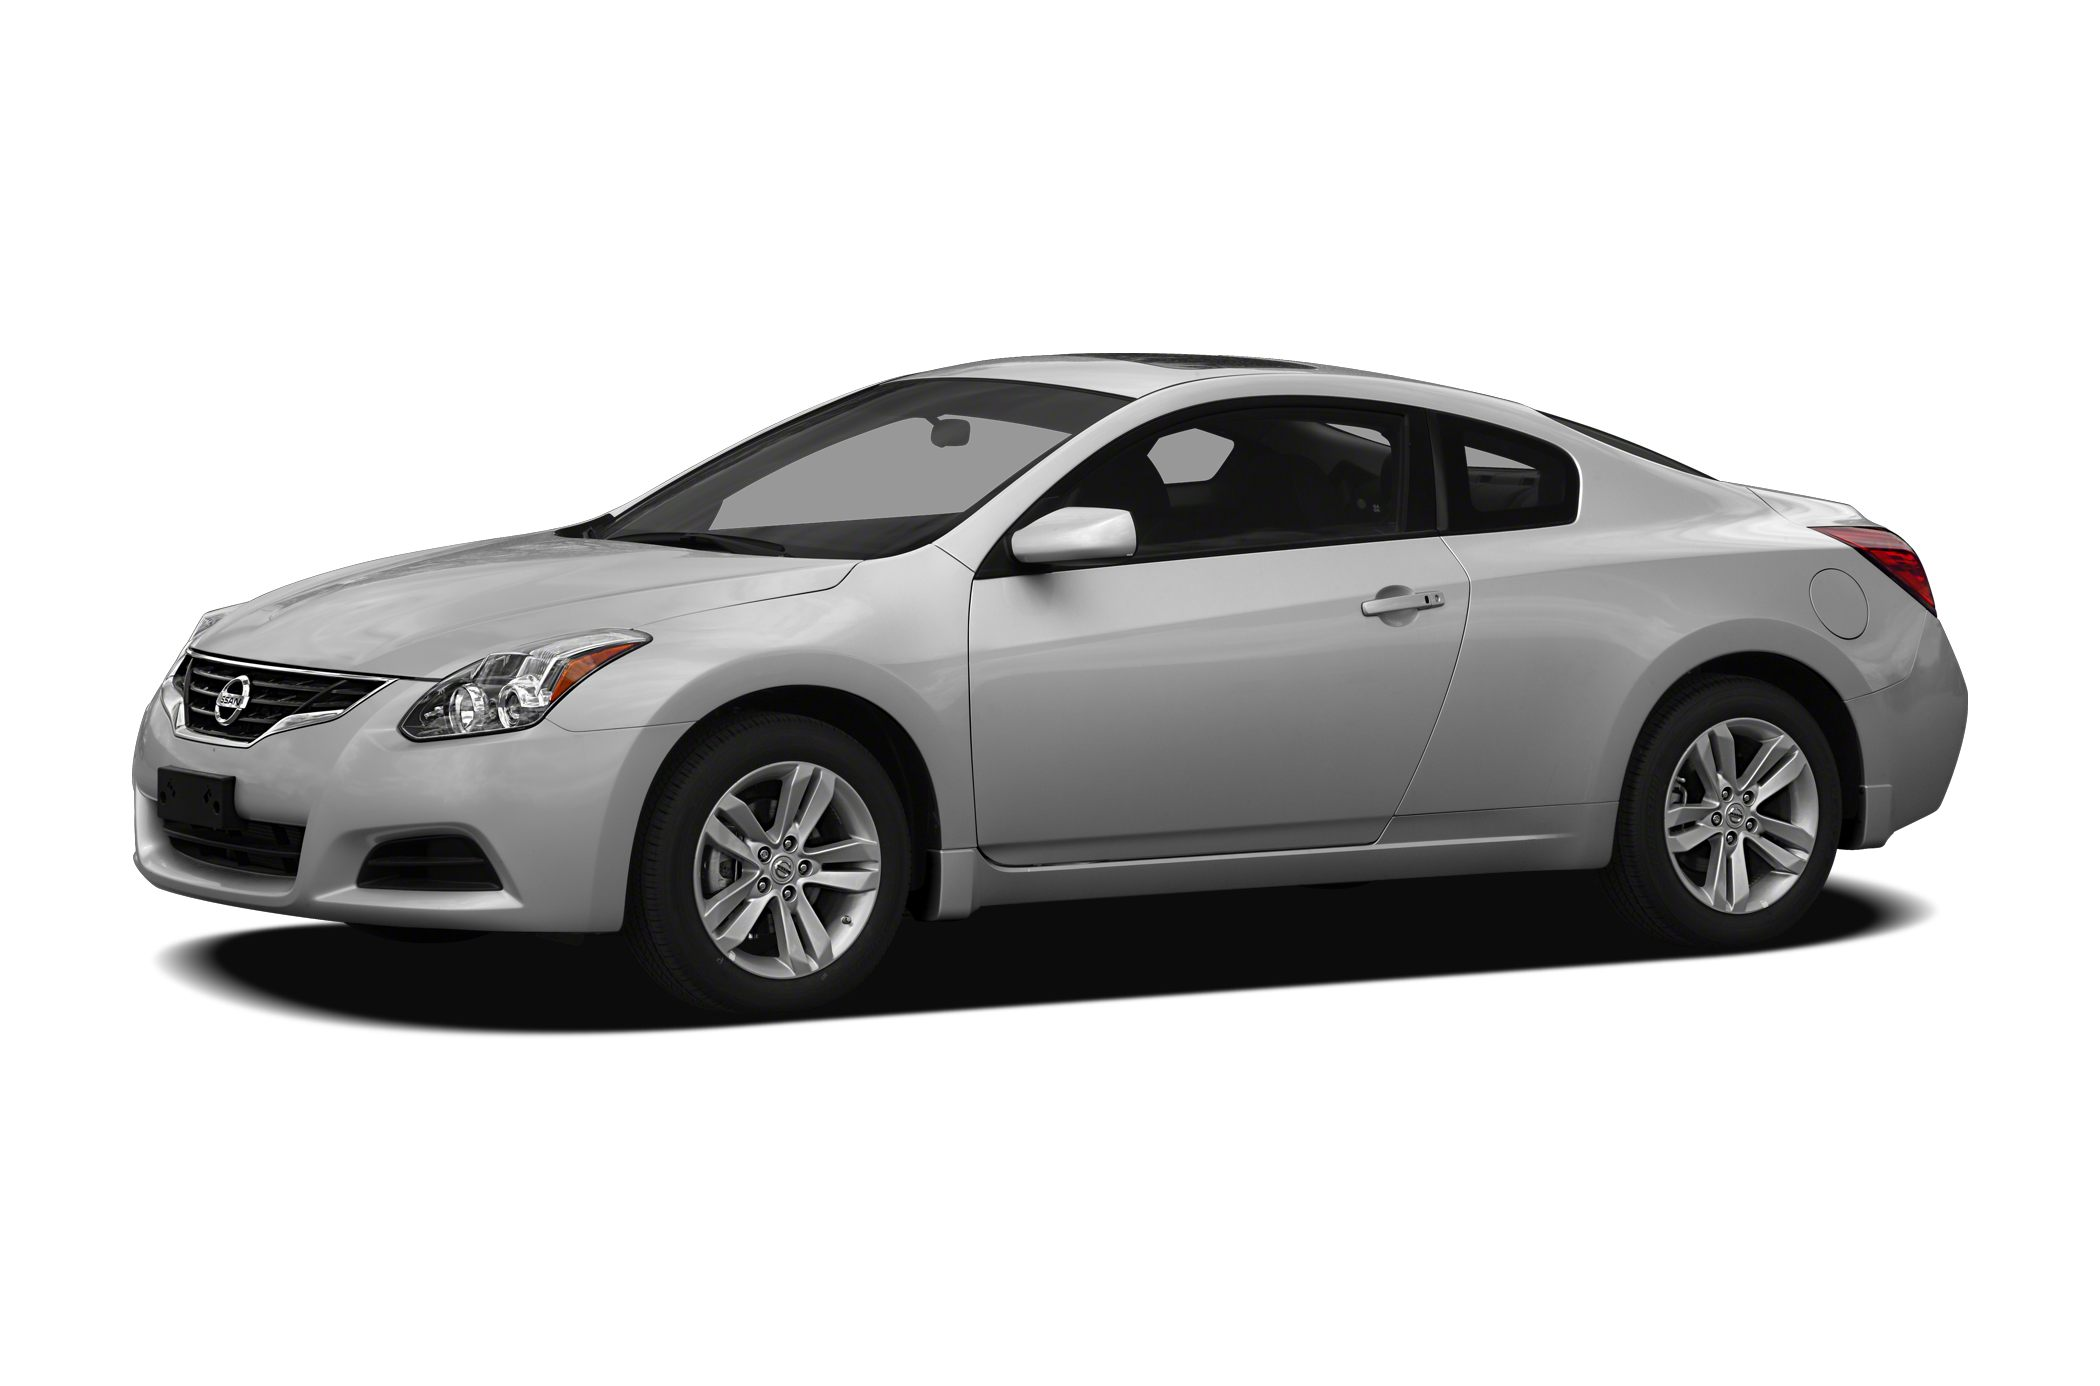 2012 Nissan Altima 2 5 S 2dr Coupe Specs And Prices